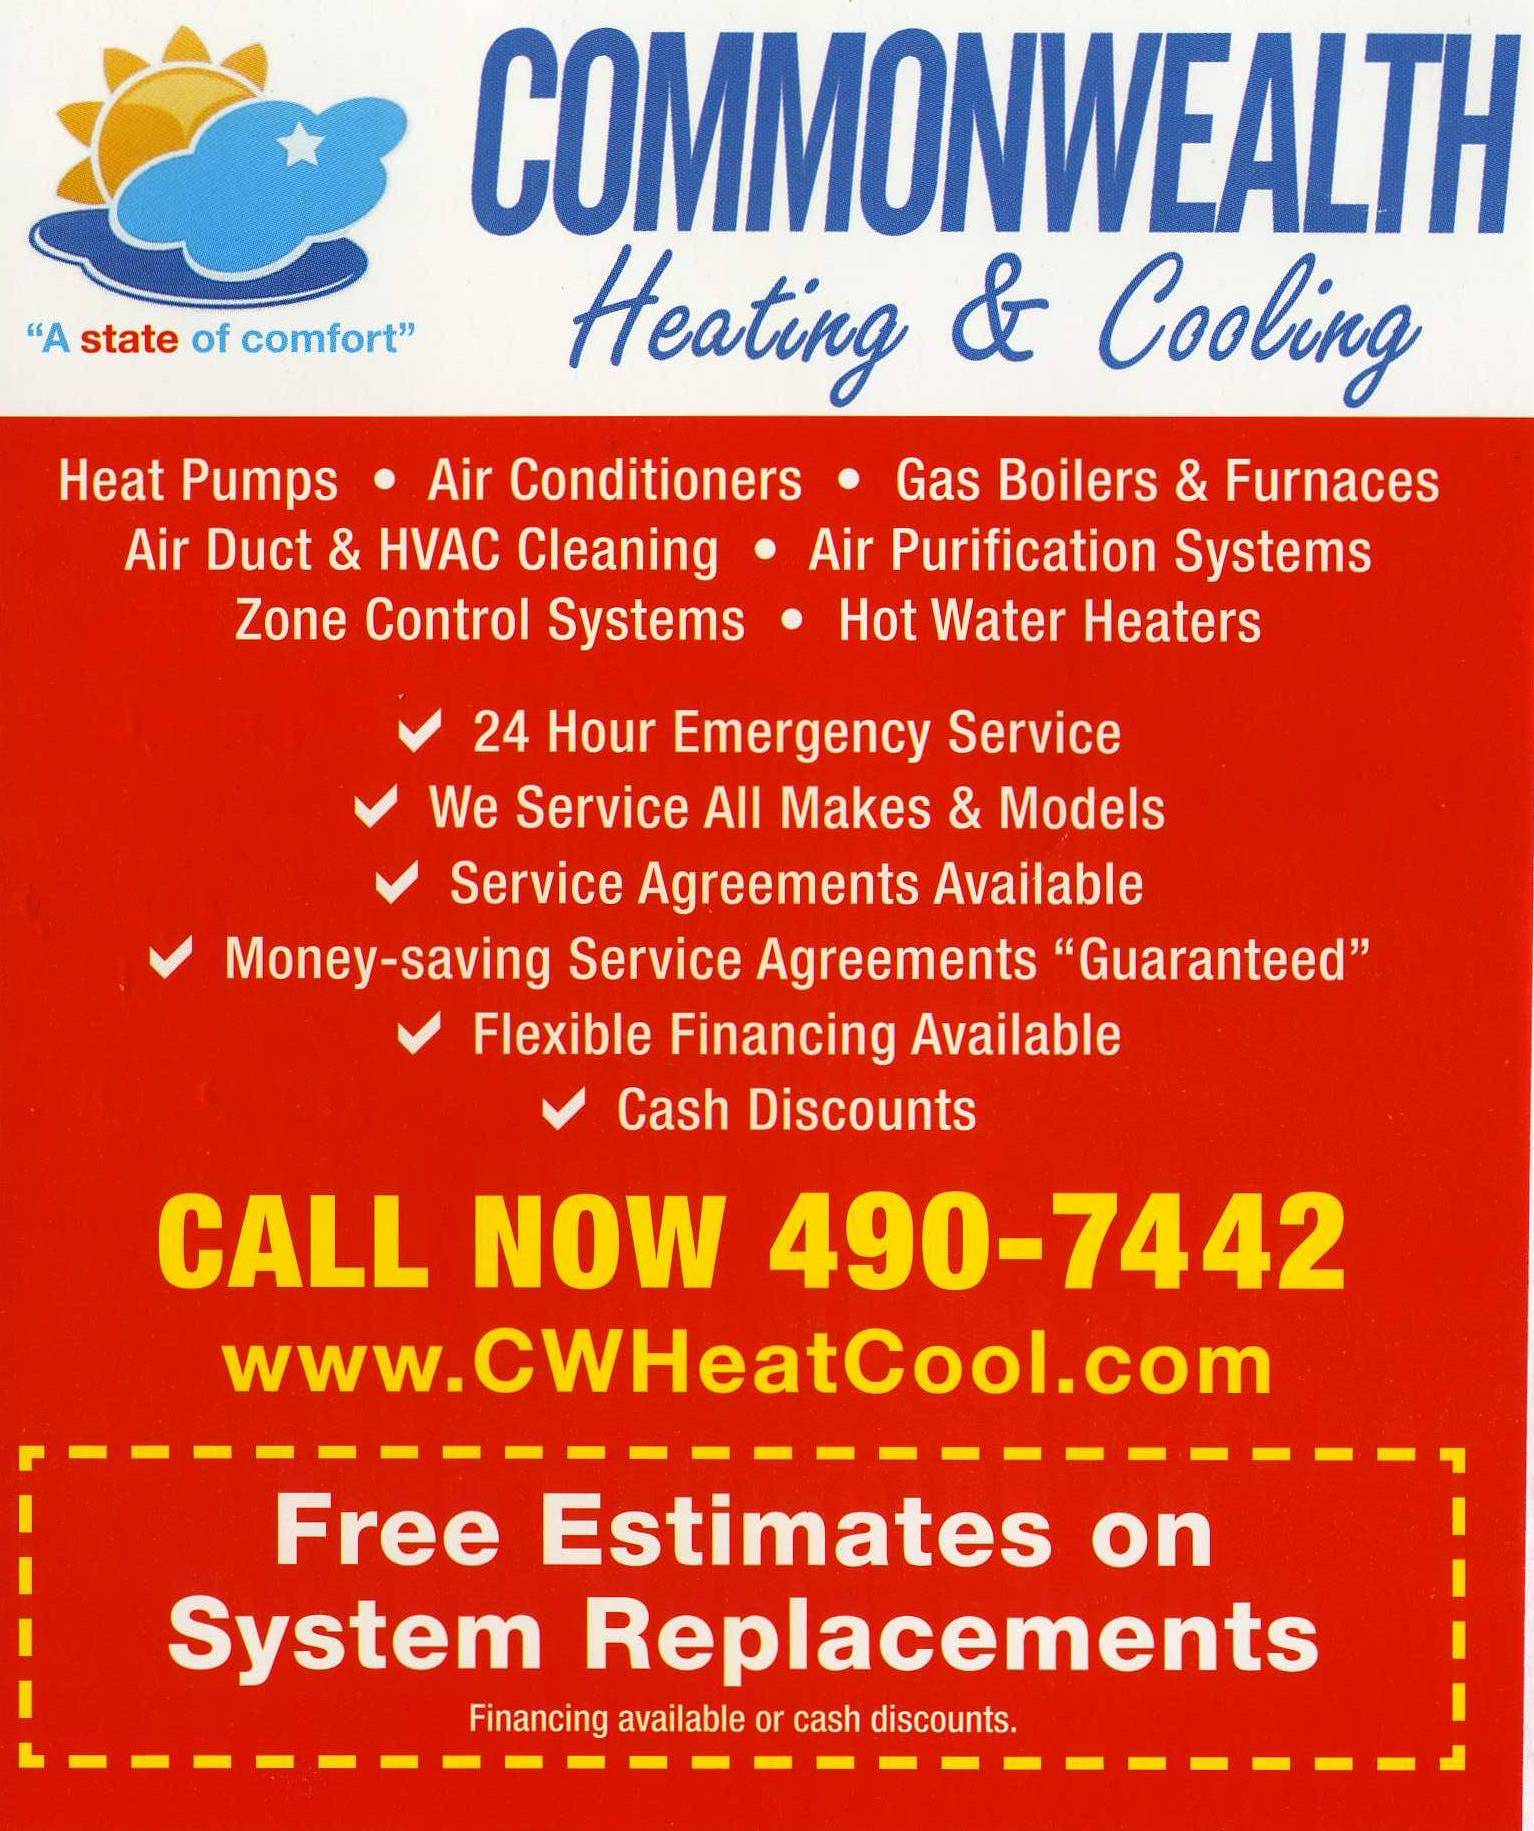 #C81903 Commonwealth Heating & Cooling Most Effective 10785 Air Conditioning Estimate pictures with 1534x1831 px on helpvideos.info - Air Conditioners, Air Coolers and more